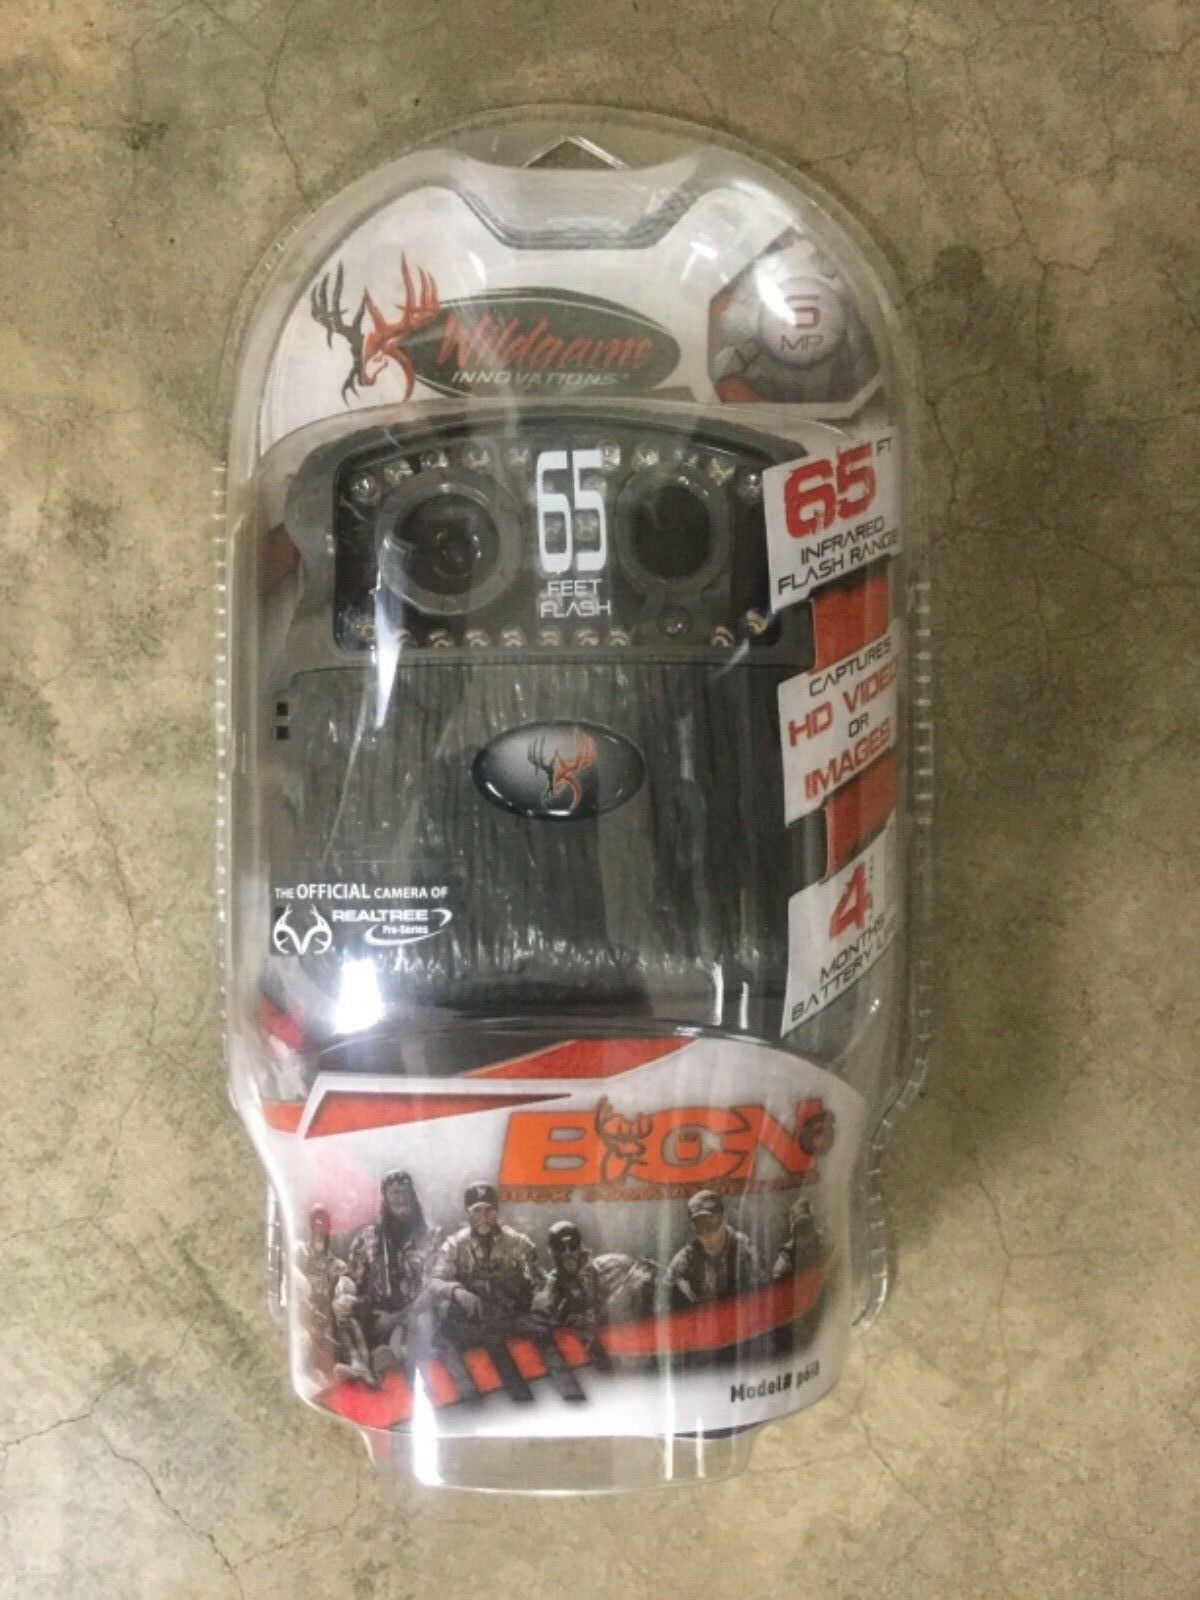 Wildgame Innovations Nano 6 Trail   Camera  model p6i8  not to be missed!